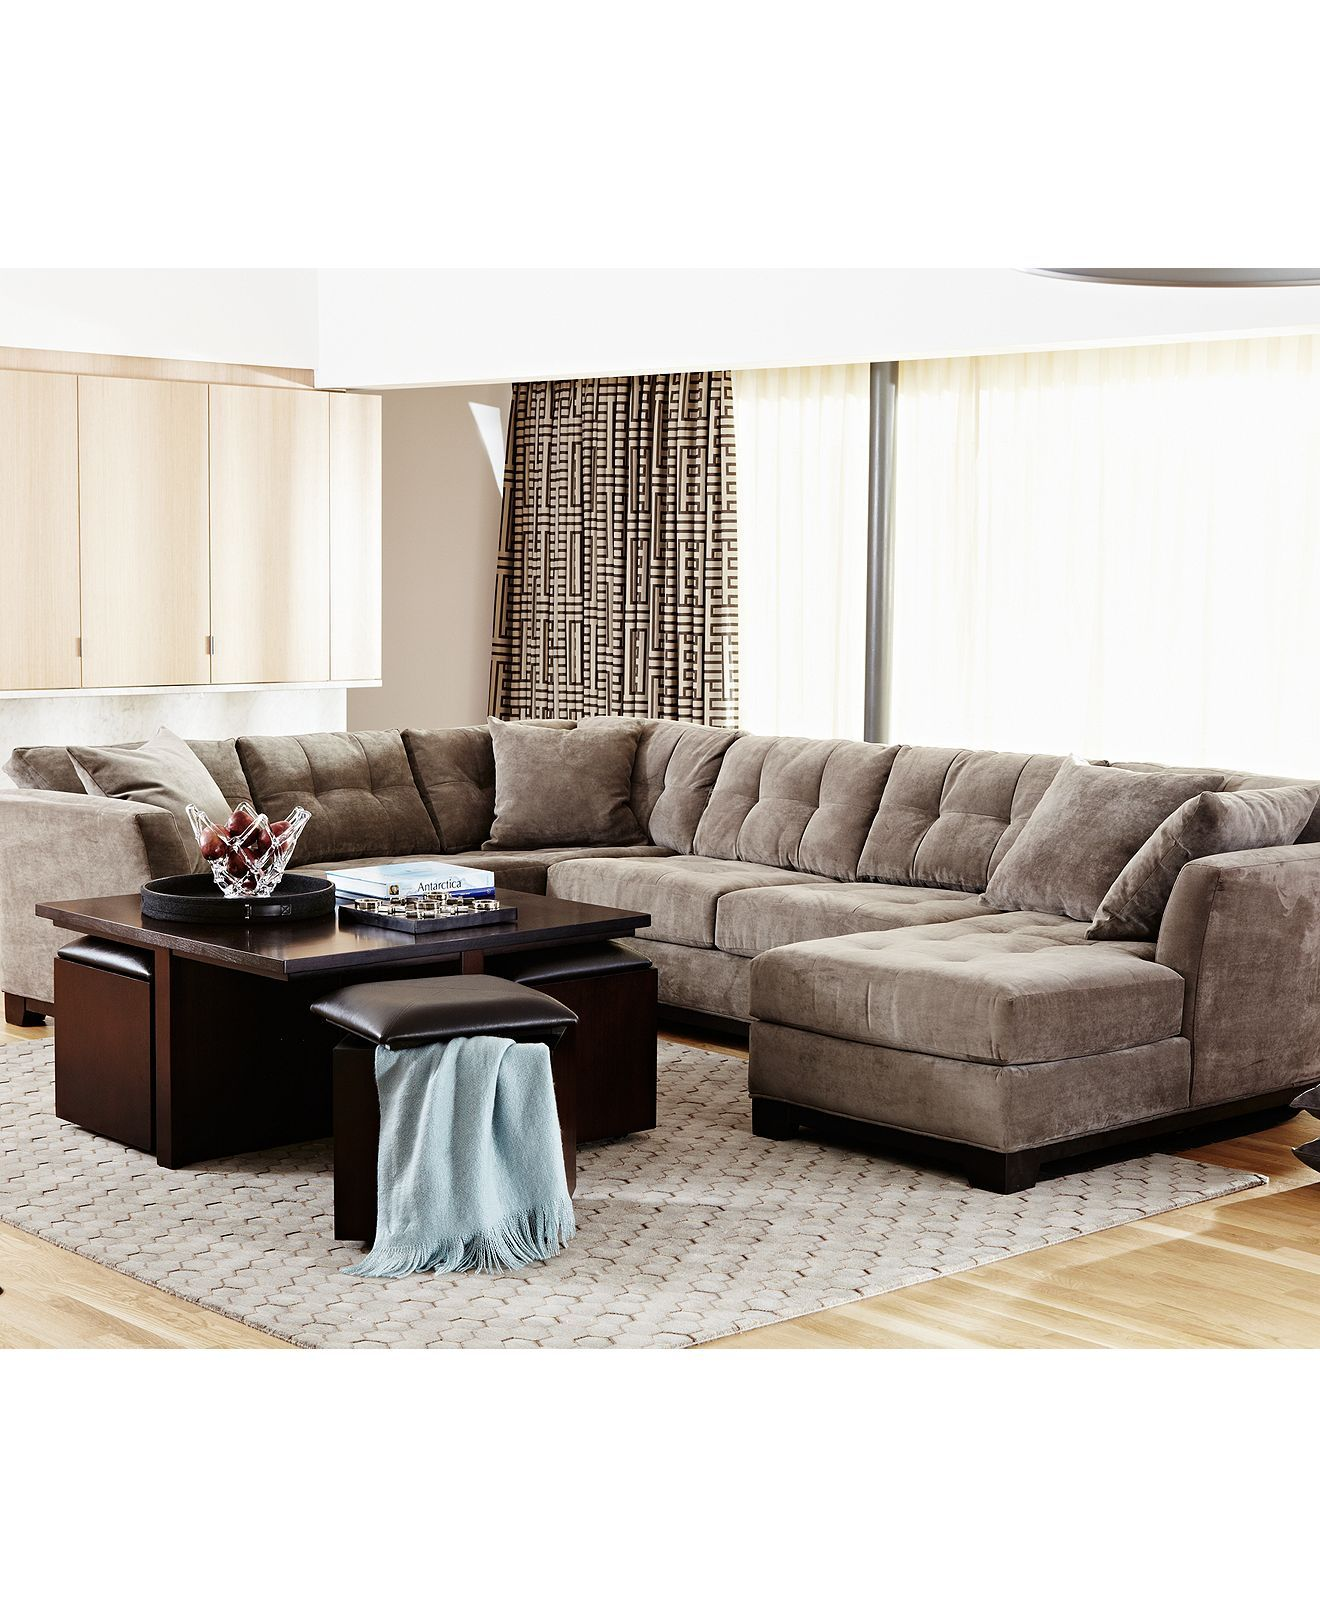 macy s elliot sofa two piece slipcover 39s fabric sectional with chaise decor